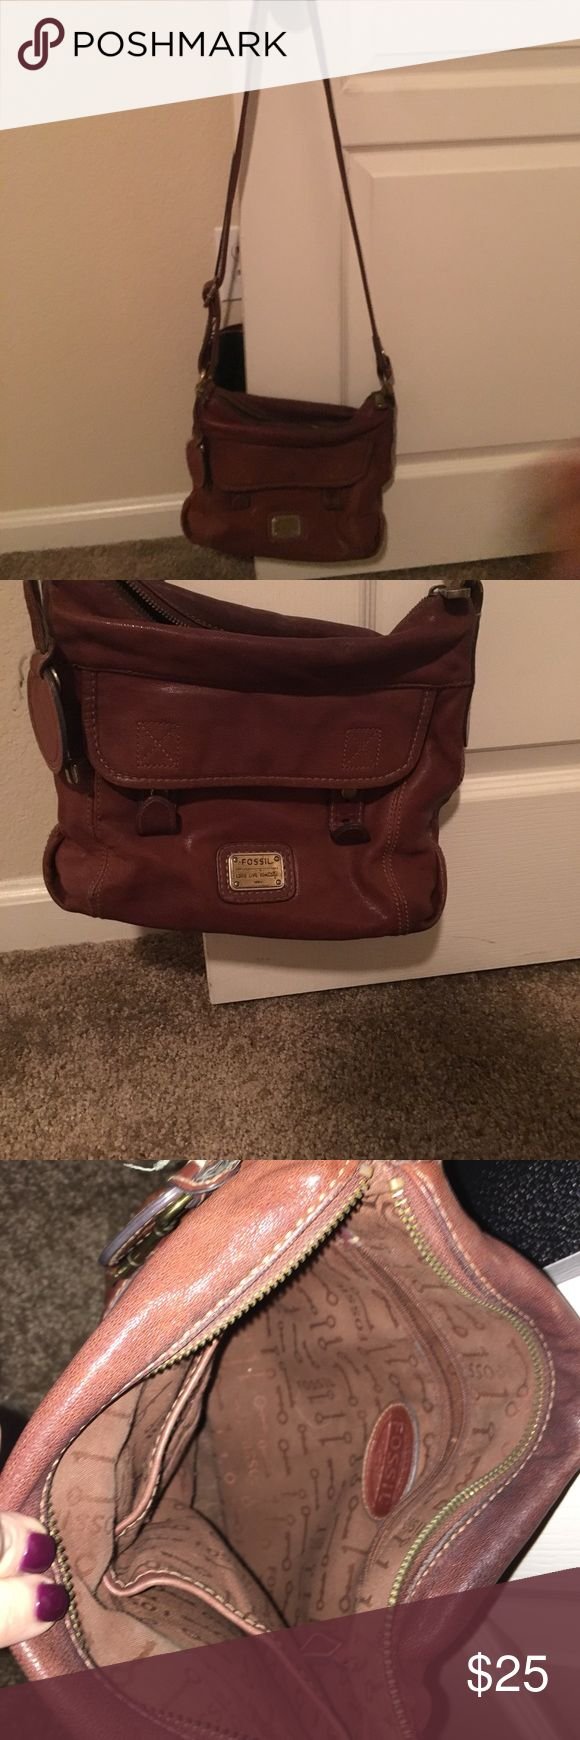 Fossil Purse Brown Fossil satchel purse. I've had this a couple years so there is a little wear on it but I never use it anymore. Asking for $25 or best offer. Fossil Bags Satchels